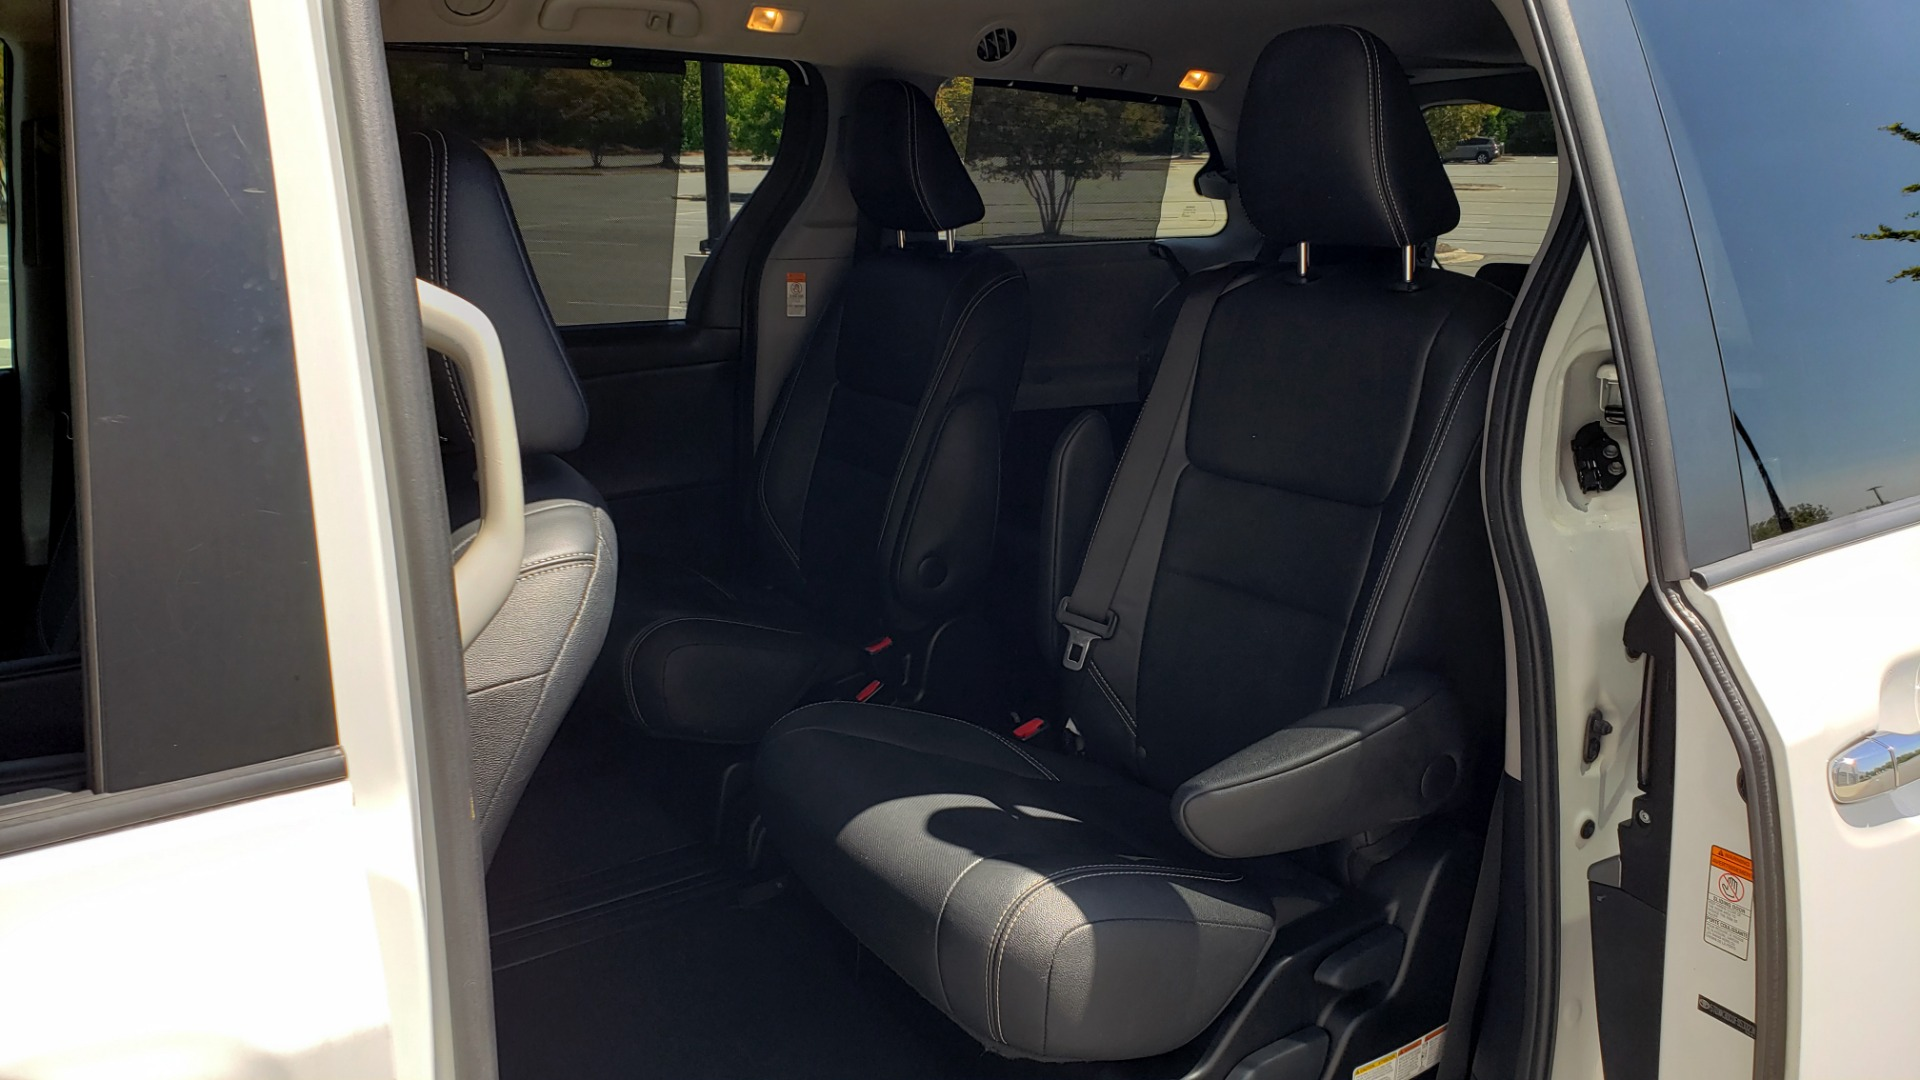 Used 2015 Toyota SIENNA SE 3.5L / FWD / 3-ROWS / 8-PASS / SUNROOF / DVD / REARVIEW for sale $21,995 at Formula Imports in Charlotte NC 28227 56